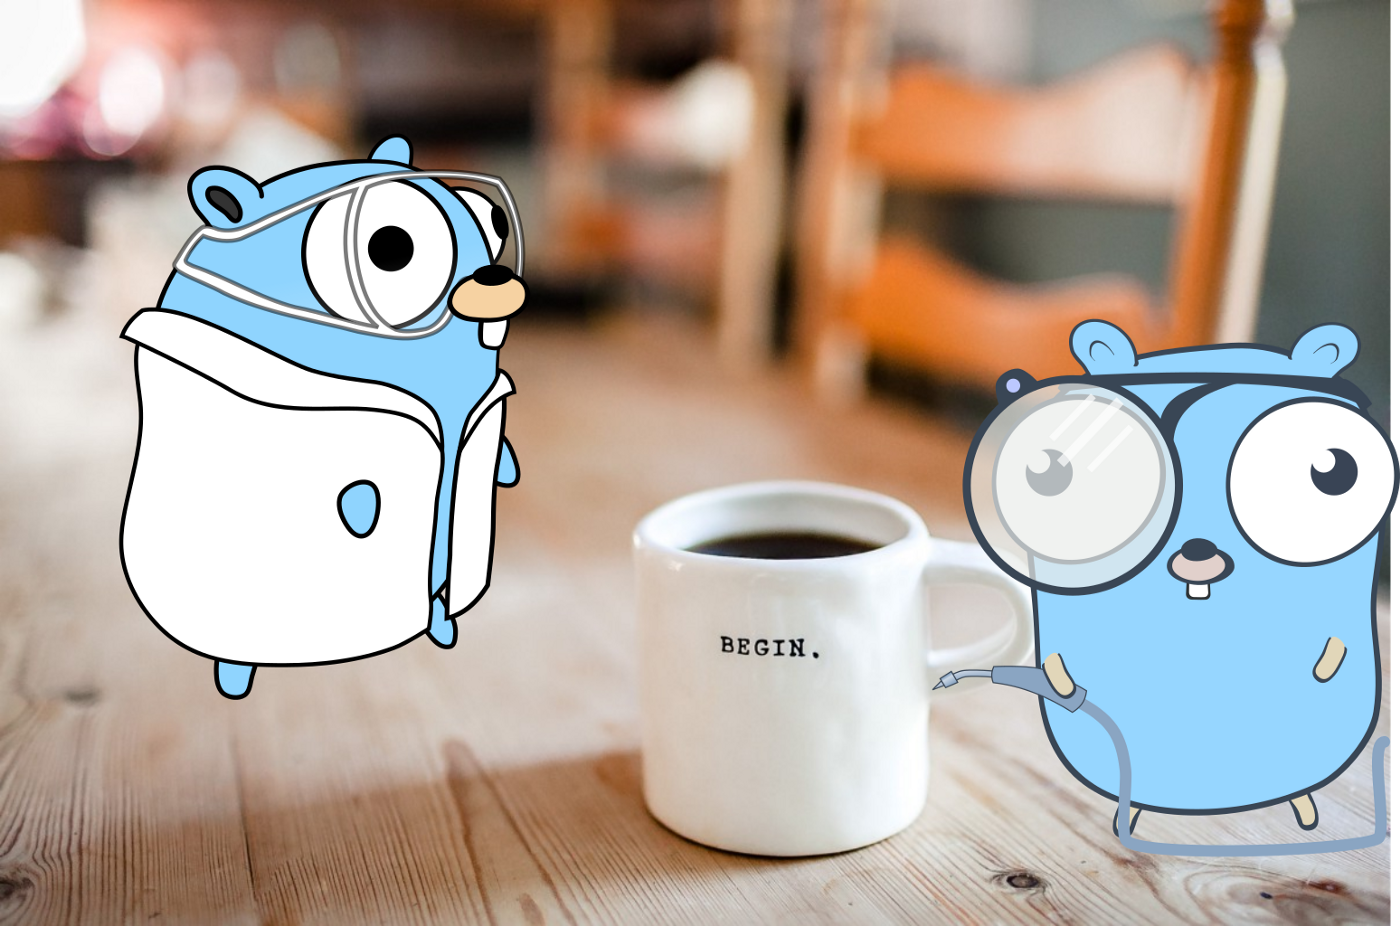 Gophers (Golang) scientist around a cup of coffee